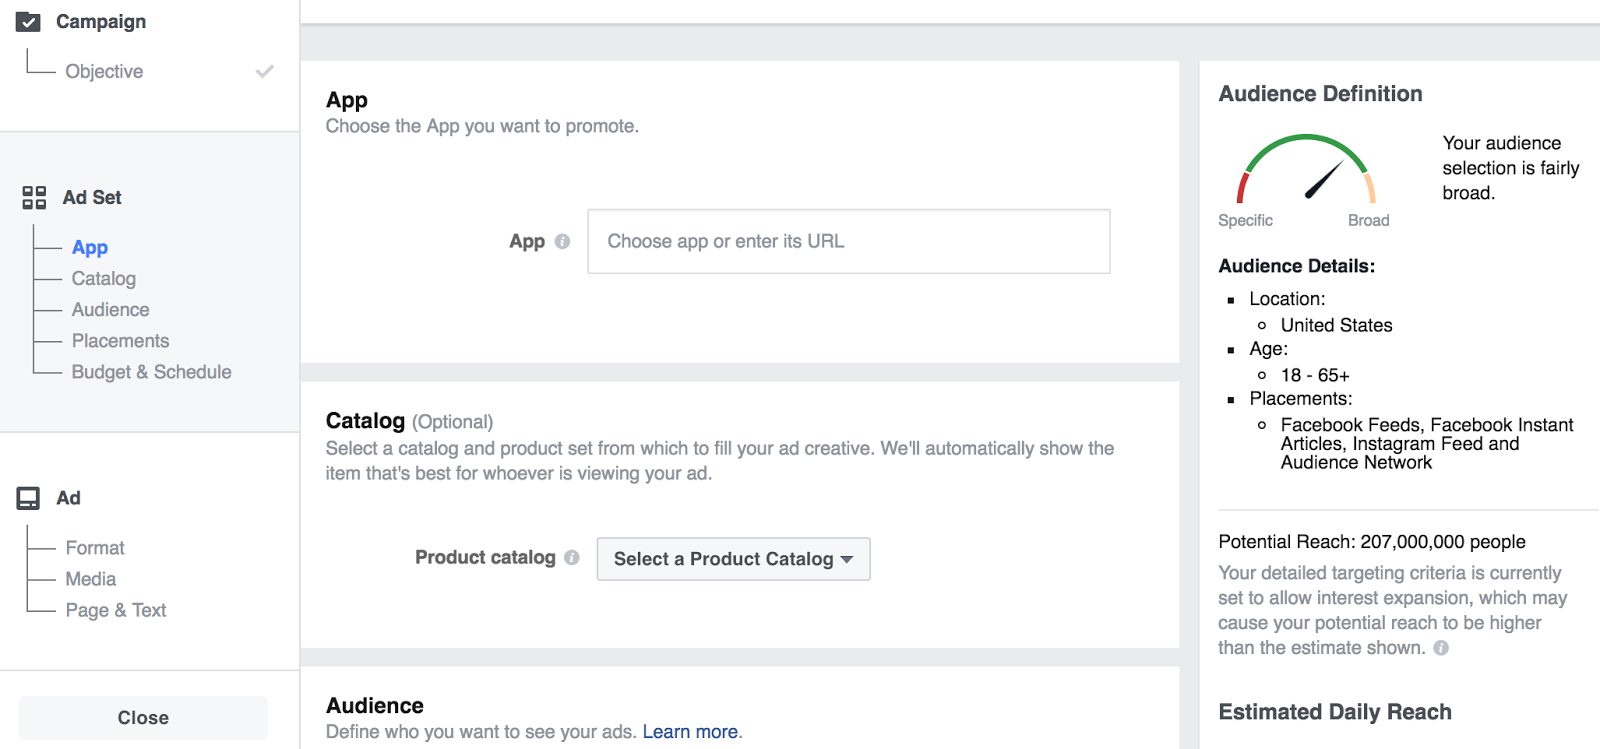 How to Use Branch Deep Links for Facebook Ad Attribution